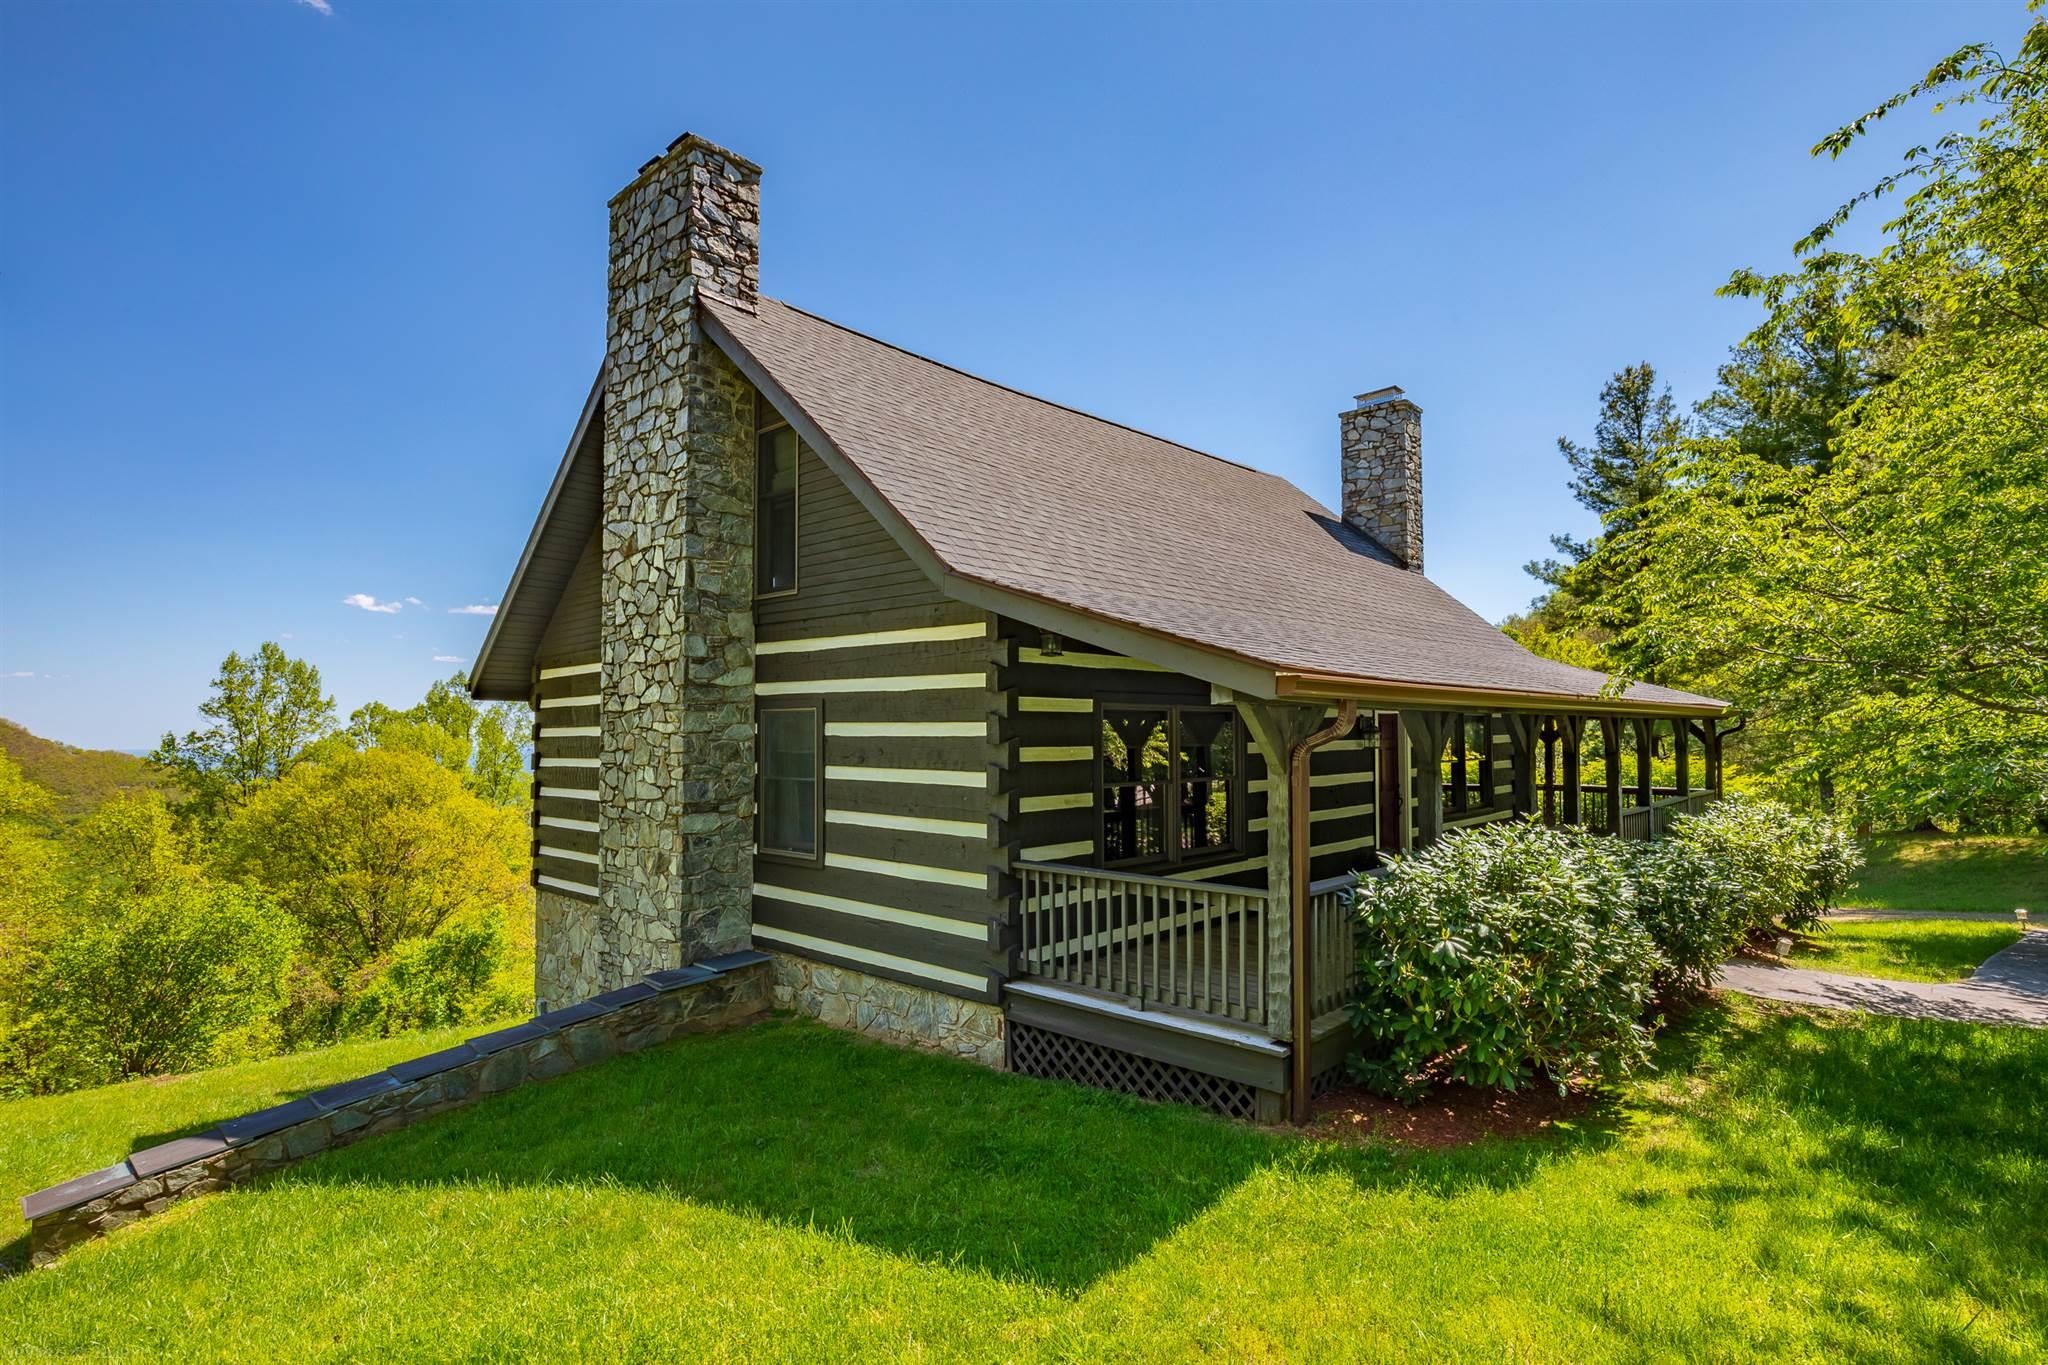 Custom Built, Hand Hewn Log Home with breathtaking Piedmont Mountain Views. Located in gated community just minutes from the Blue Ridge Parkway. Well manicured, mature landscaping gives the privacy that so many seek in the mountains. Covered porch stretches across the front and side of the house. Once inside you will be in awe over the craftsmanship that went into building this home. The living room is open to the loft above with a wood burning stone fire place at its center. The kitchen is open to the dining and living room with Granite counters, stainless steel appliances and island. There is a screened porch and large open deck to enjoy the views. Also on the main level is two bedrooms and a full bathroom. Upstairs is a loft/family room and the master suite. The oversized master has a cathedral ceiling, wood burning fireplace, full bathroom and private balcony. On the lower level is a full bathroom, bedroom, laundry room and large unfinished room with another fireplace.